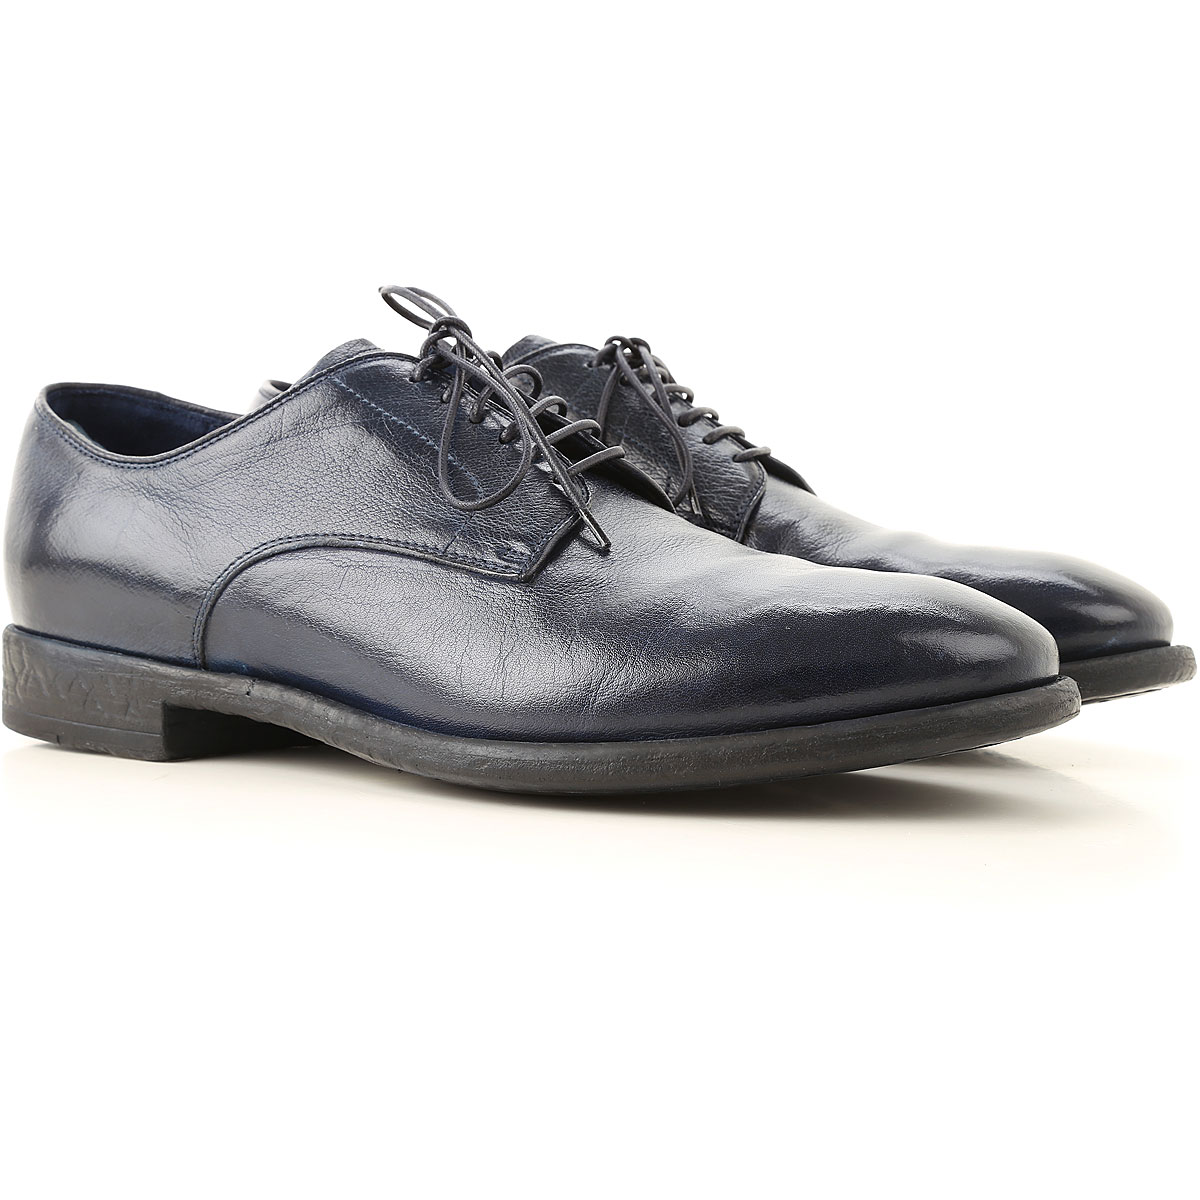 Officine Creative Loafers for Men On Sale, Oltre Mare, Leather, 2019, 10 10.5 11 12 7 7.5 7.75 8 8.5 9 9.5